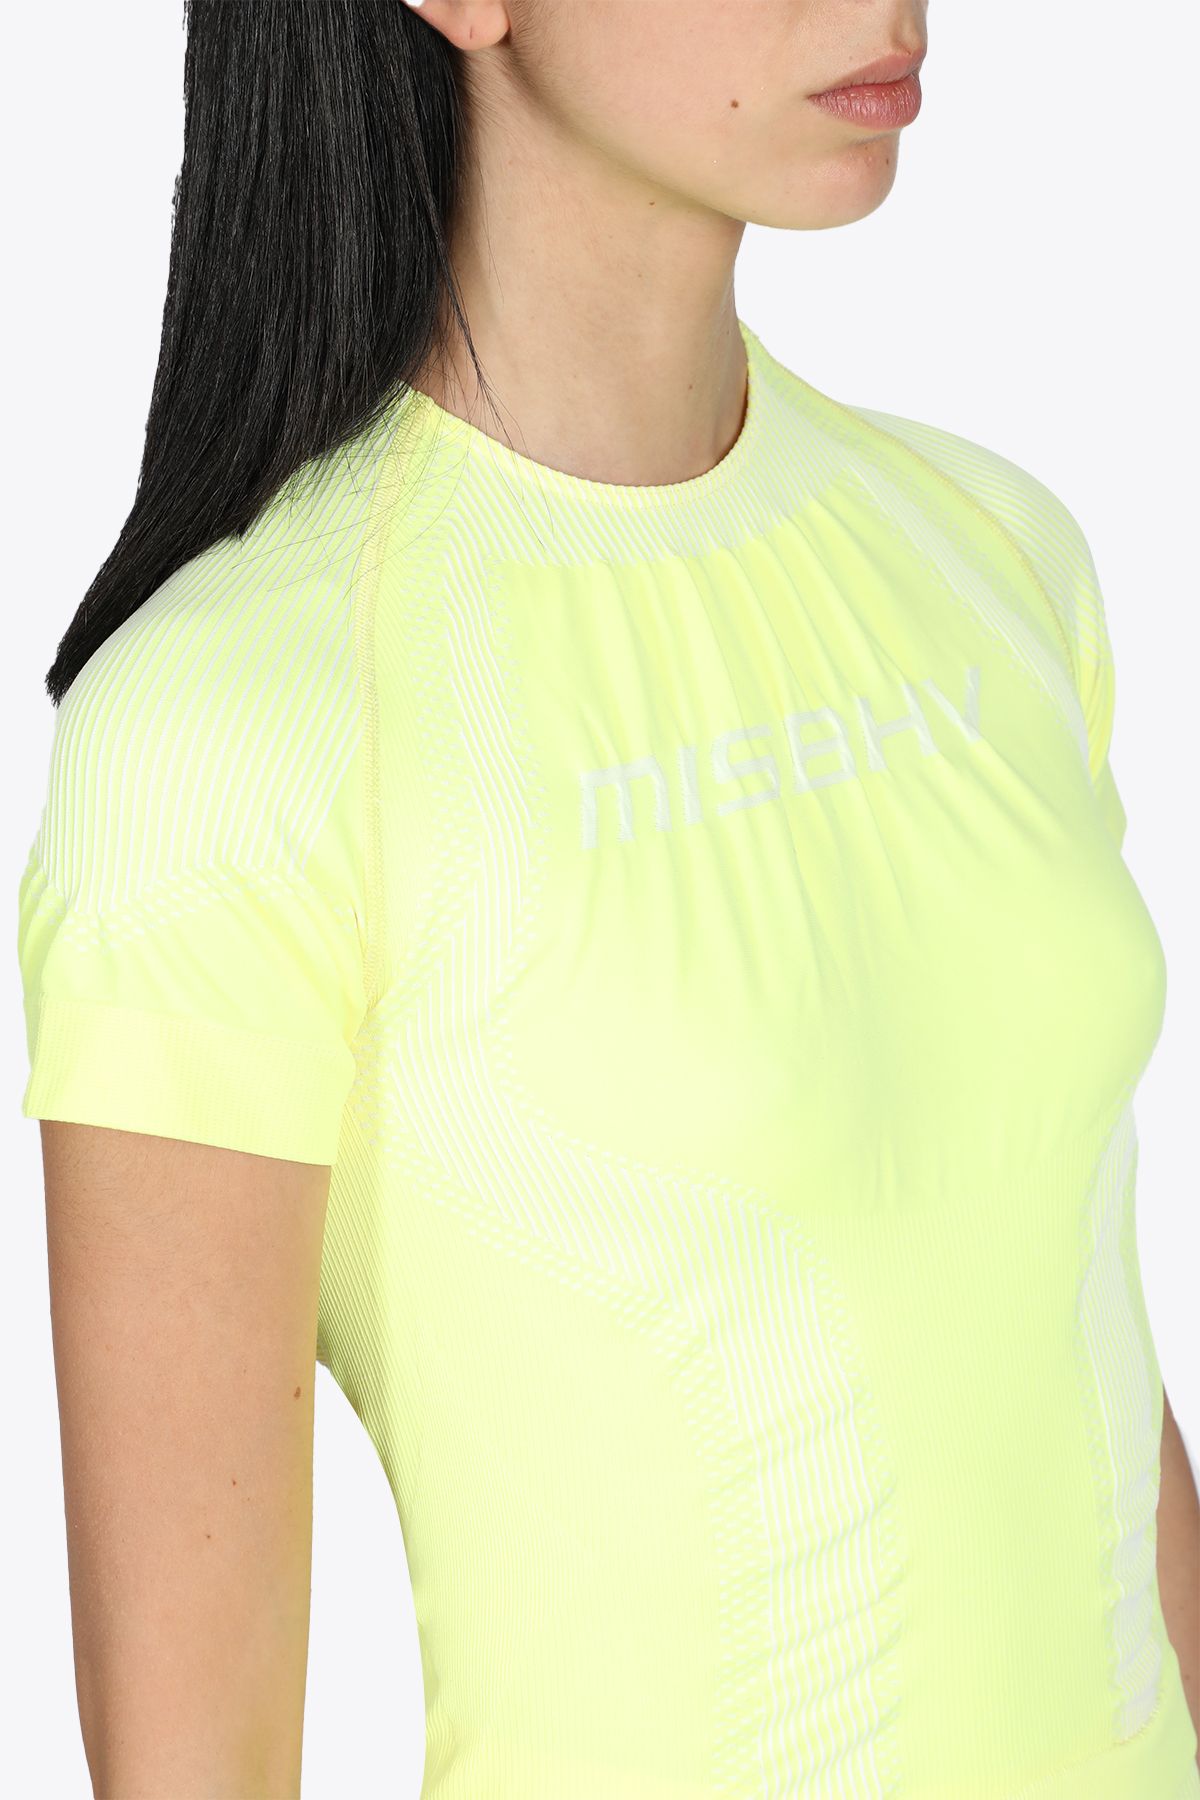 SPORT ACTIVE CLASSIC T-SHIRT MISBHV | 8 | 021W524 SPORT ACTIVE CLASSIC T-SHIRTYELLOW/WHITE